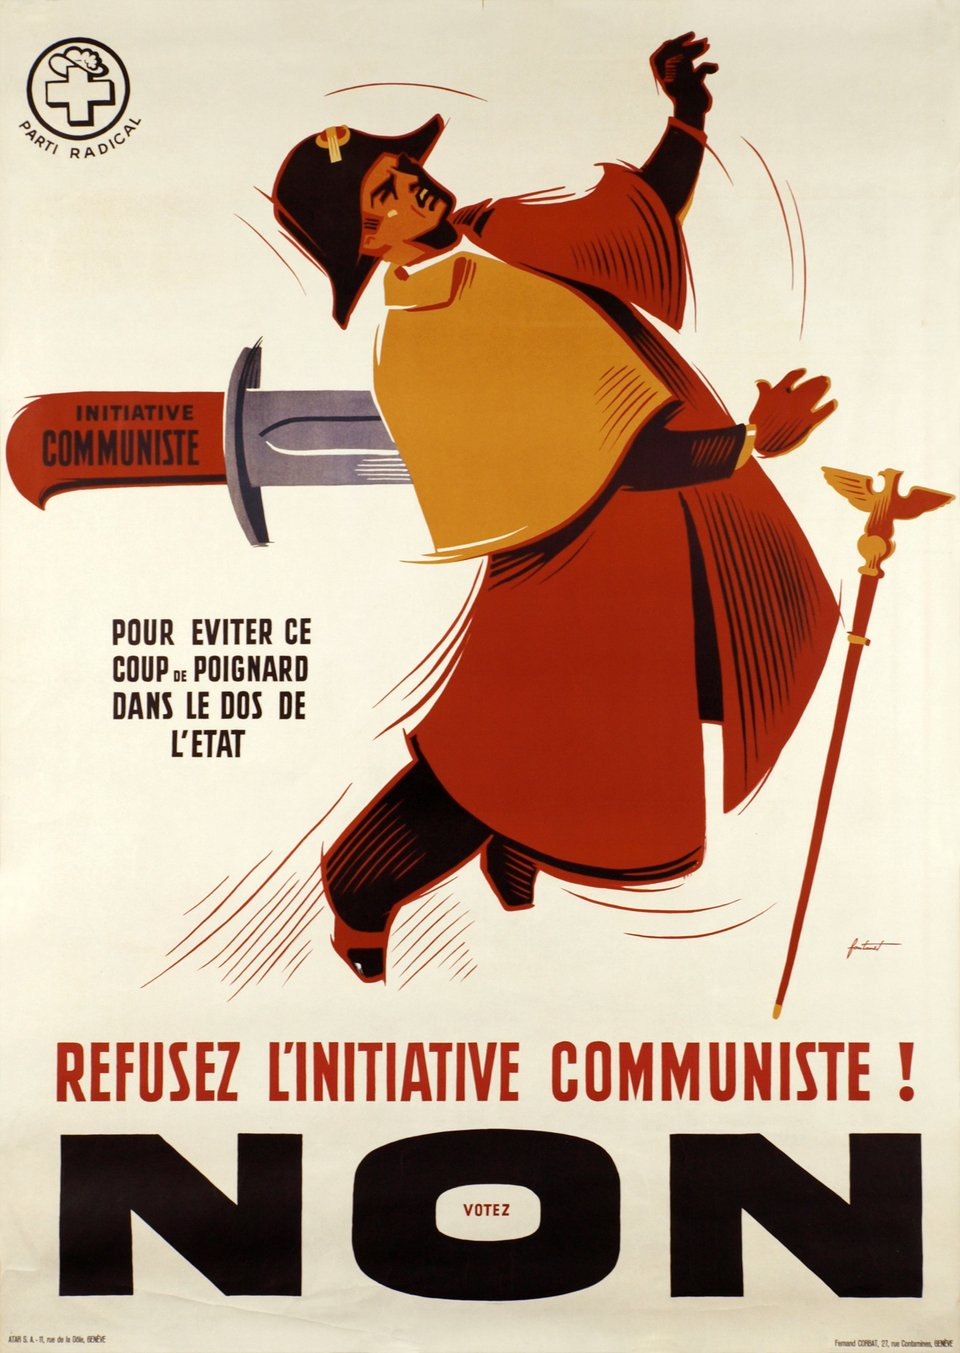 Parti Radical, Refusez l'initiative communiste! Votez NON – Vintage poster – Noel FONTANET – 1940